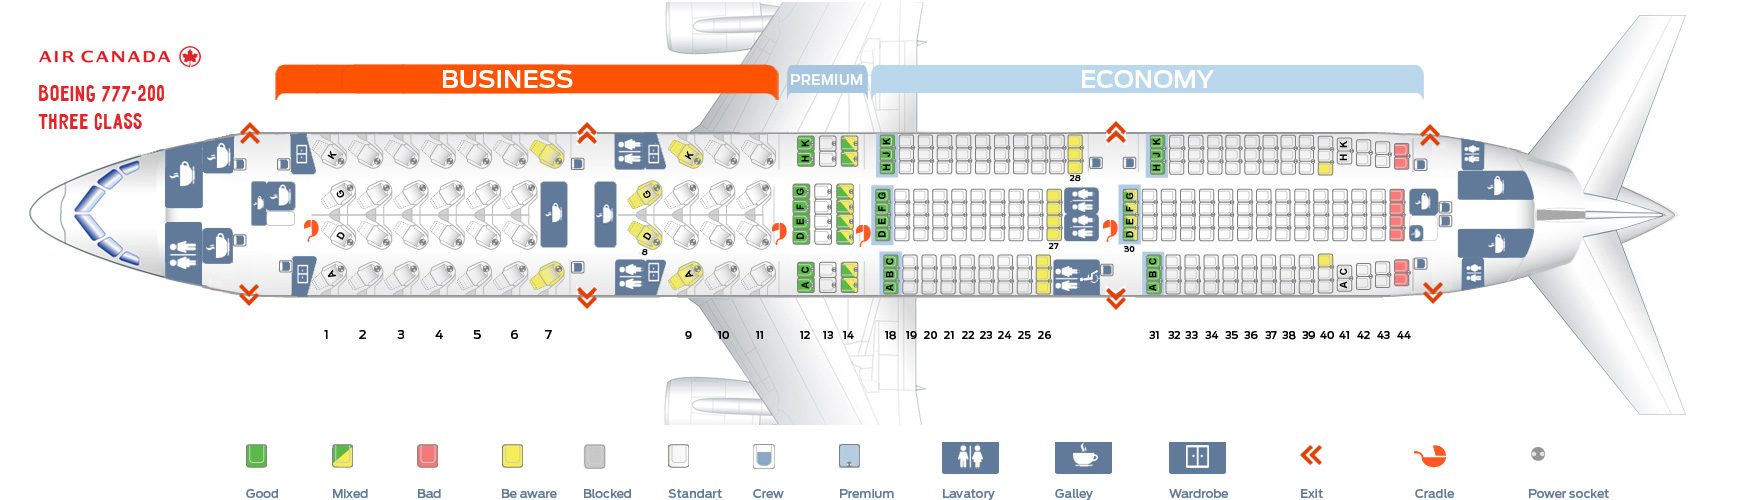 Boeing 777-200 Seat Map Seat map Boeing 777 200 Air Canada. Best seats in plane Boeing 777-200 Seat Map